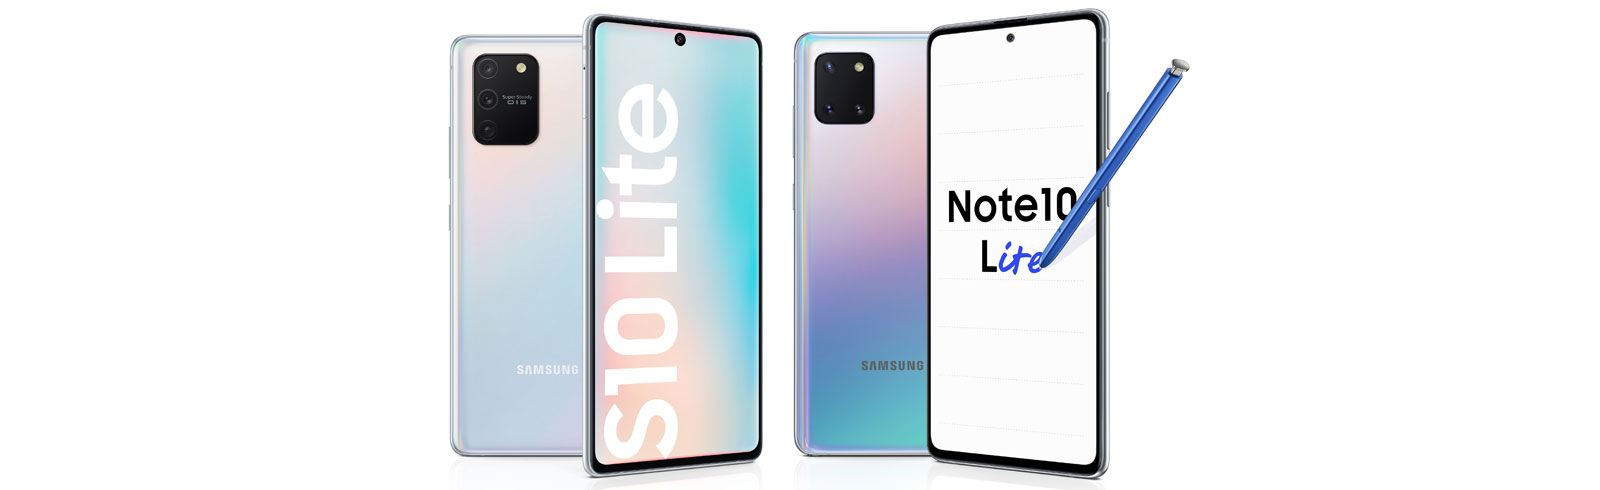 Samsung announces the Galaxy Note10 Lite and Galaxy S10 Lite